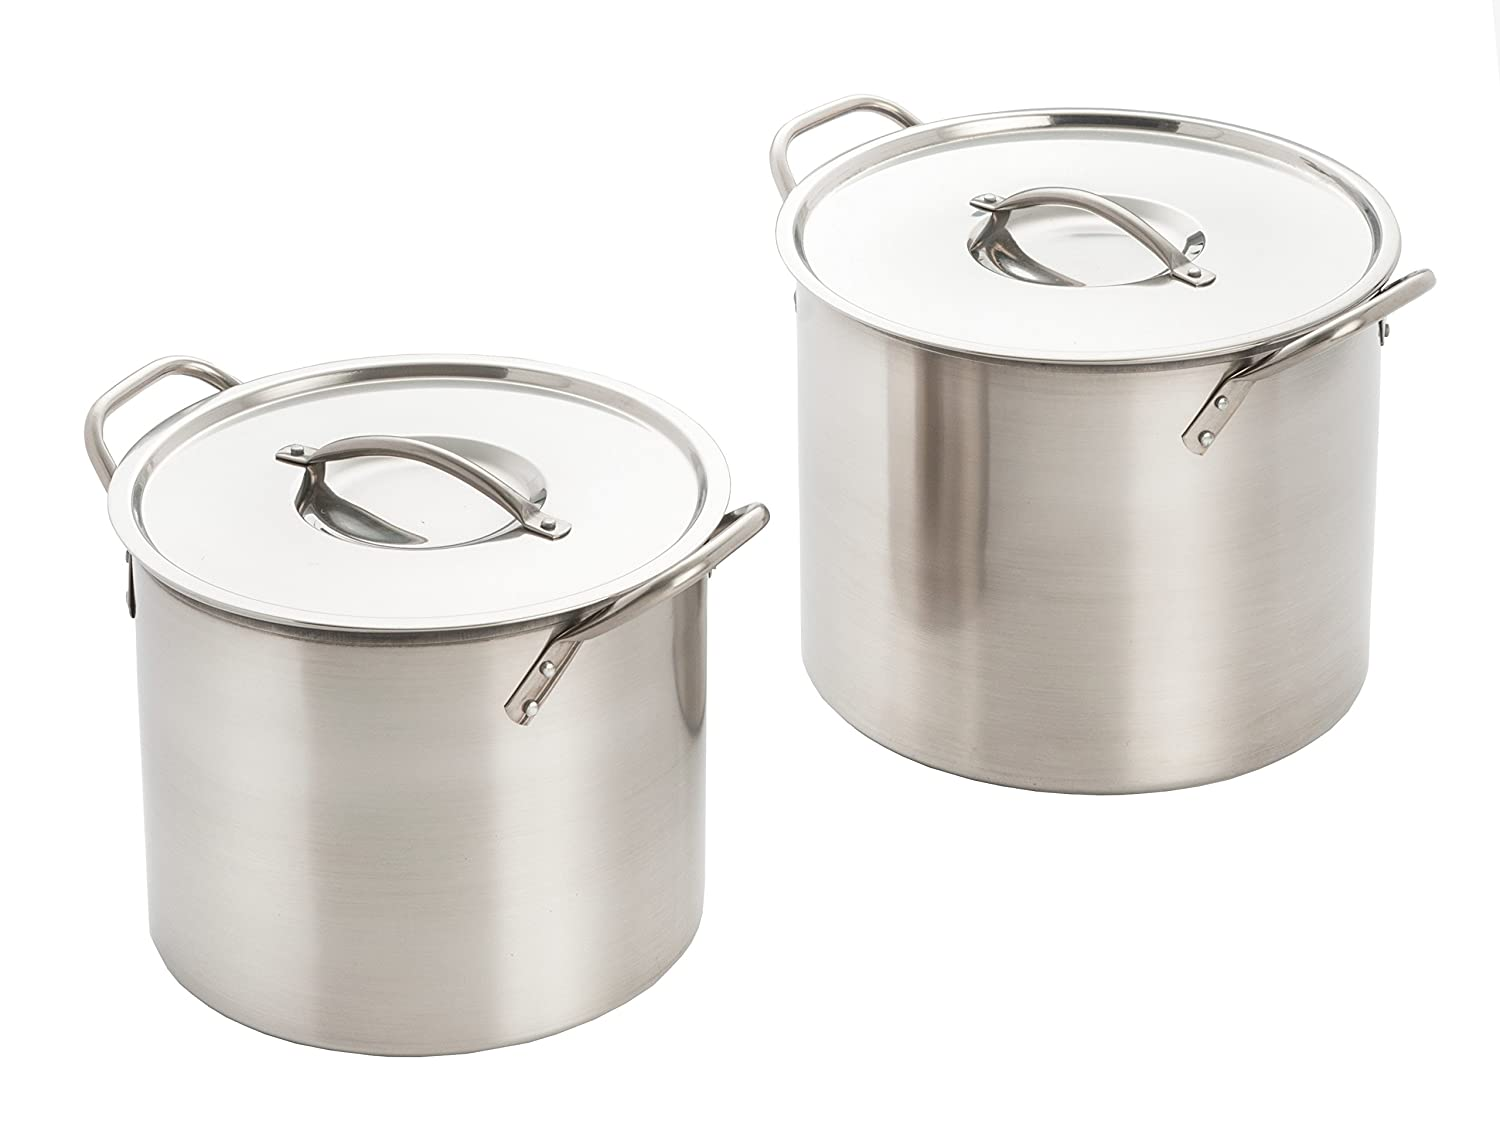 Excelsteel Set Of 2 Stainless Steel Stockpot With Lids 524